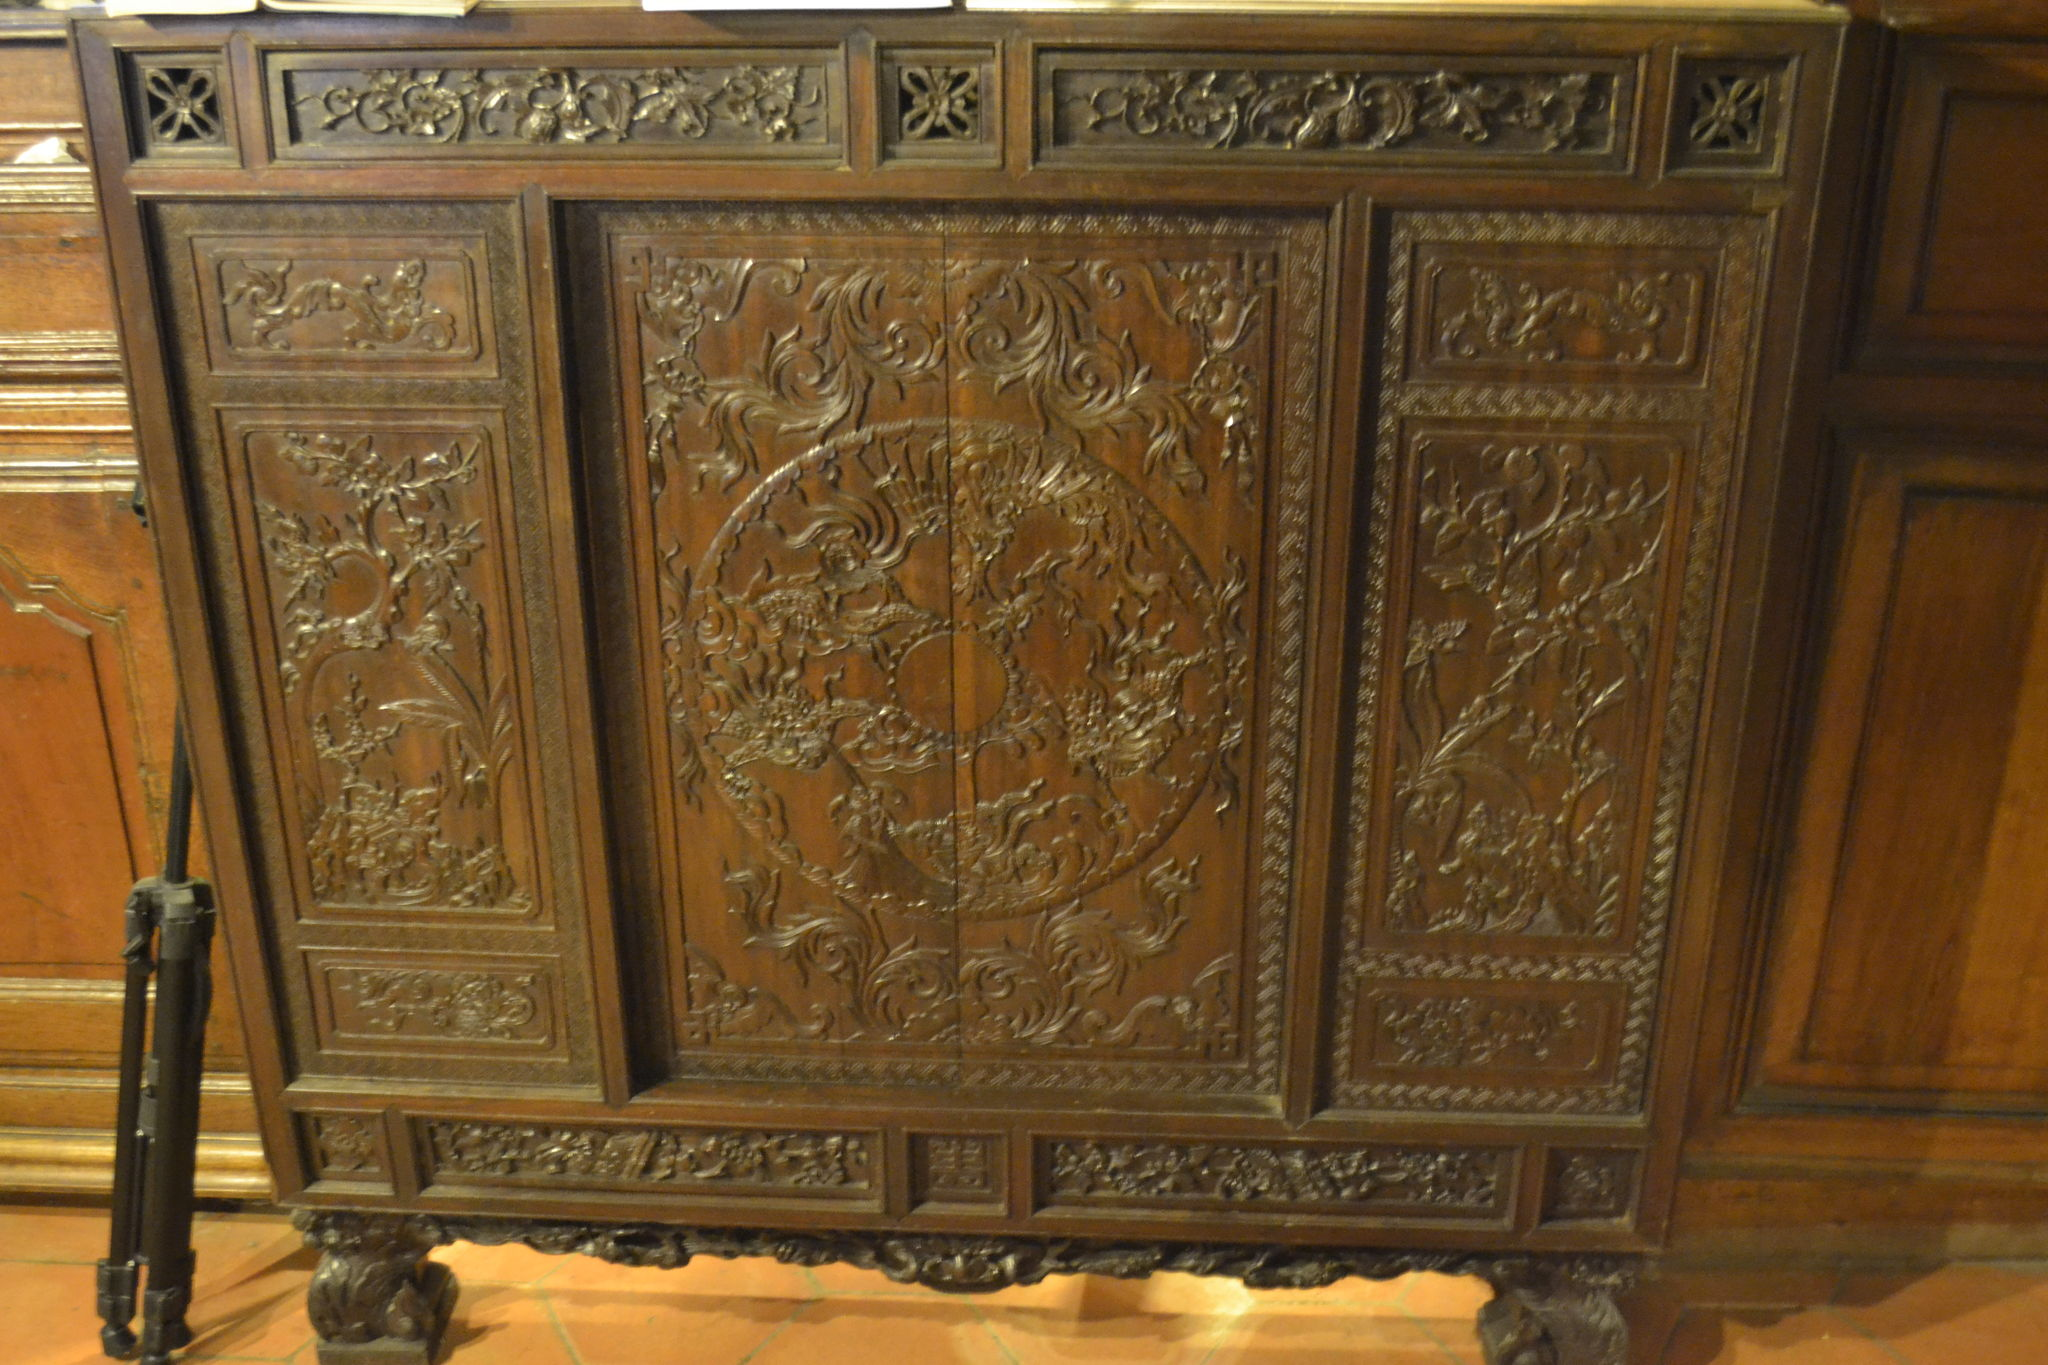 Mobilier chinois vietnam chinese furniture vietnam for Mobilier chinois